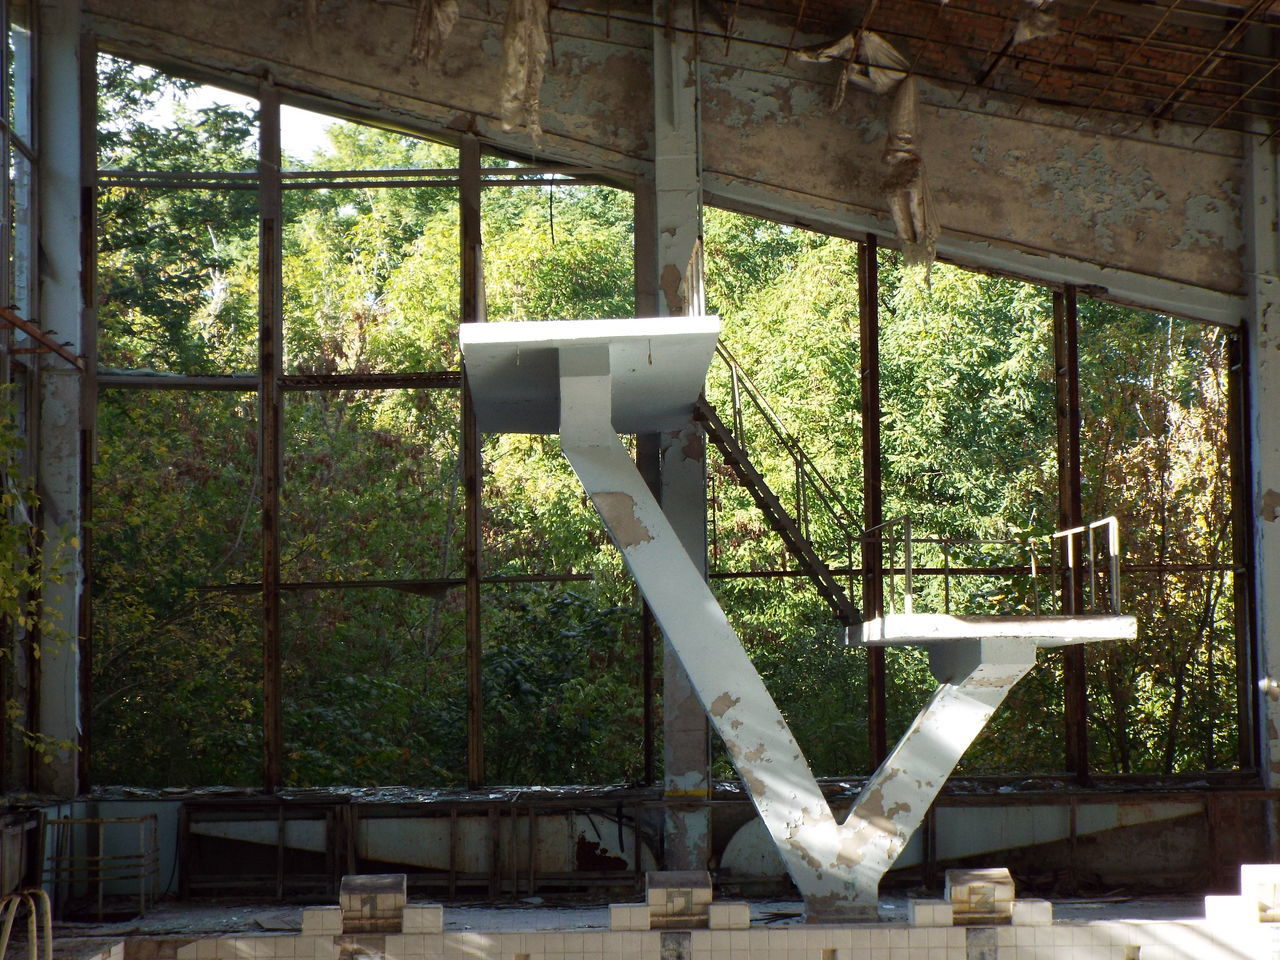 Image captured at the abandoned swimming pool in Chernobyl, Ukraine. The area has been left to ruin since 1986. The swimming pool was still being used days after the disaster. Abandoned Chernobyl Diving Board Nuclear Disaster Ruins Sports Center Swimming Pool Ukraine Chernobyl Exclusion Zone Chernobyl Town Chernobyl Zone